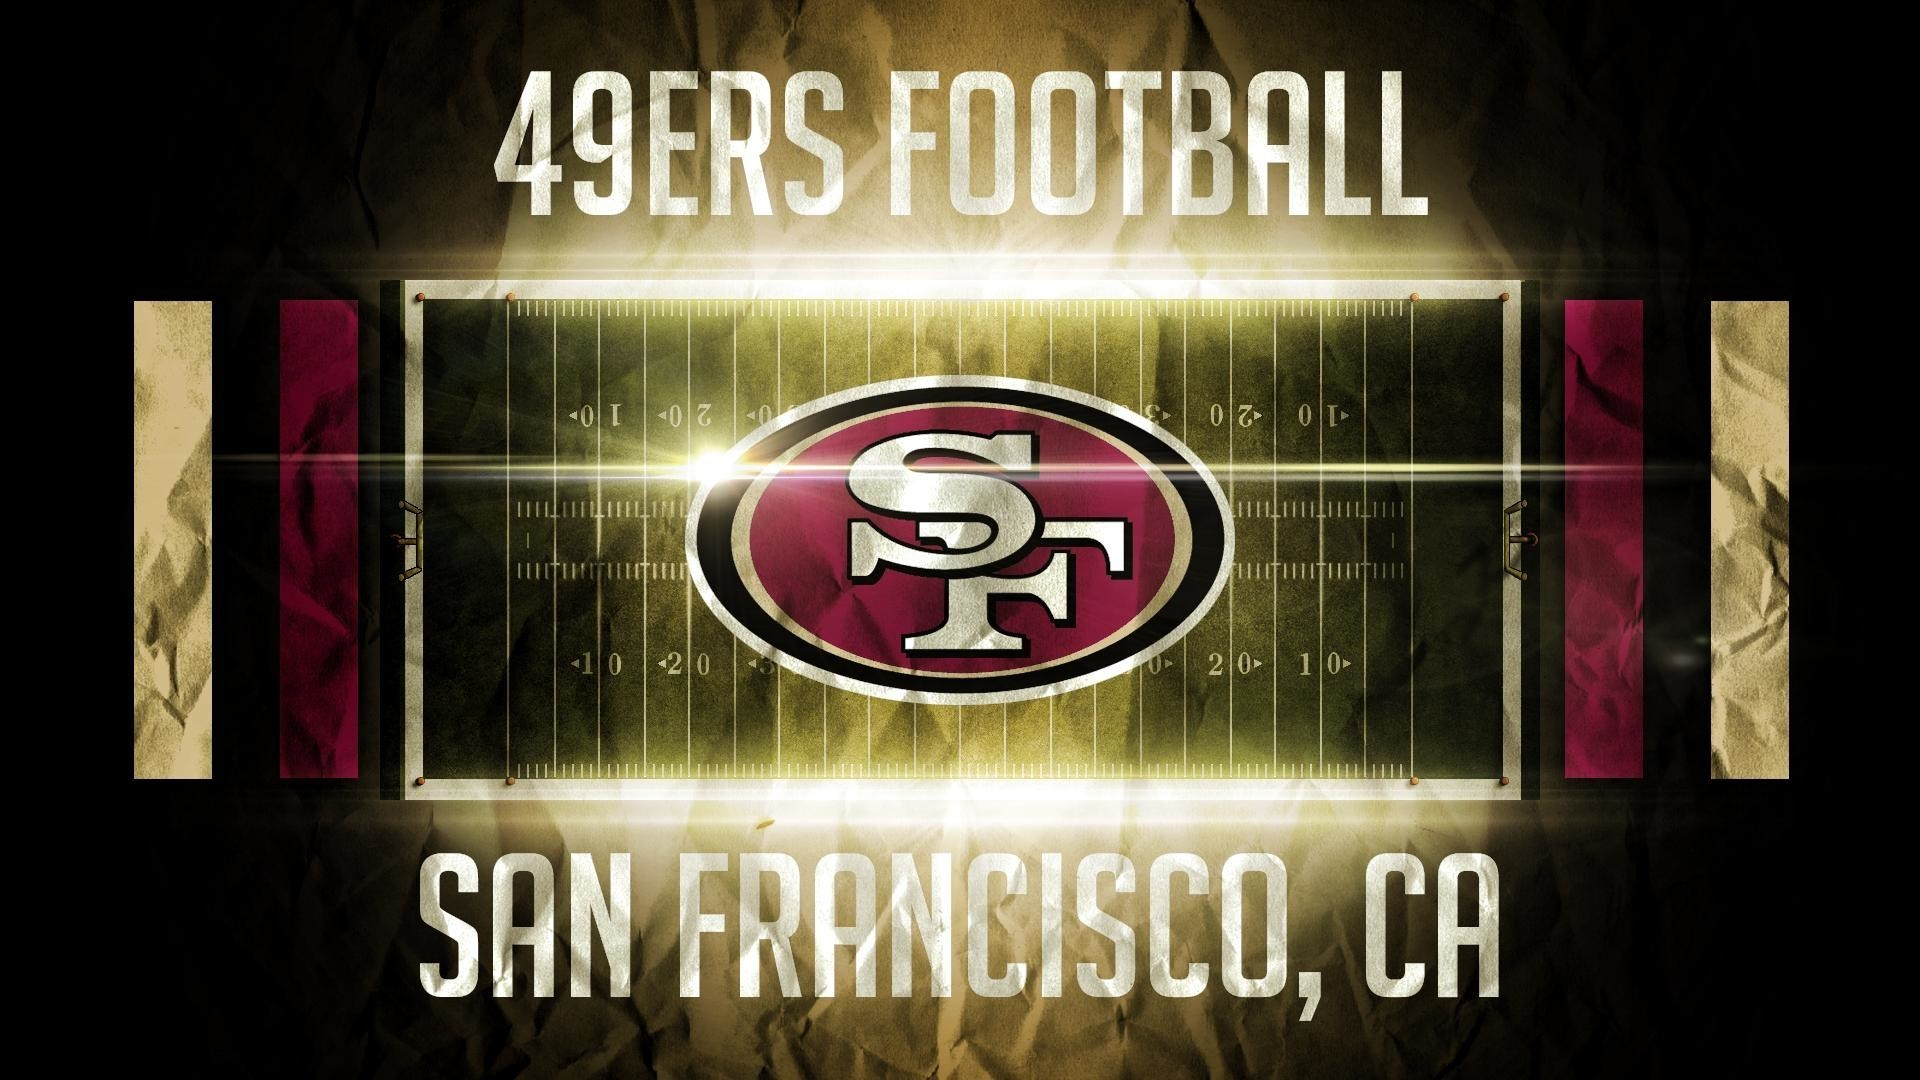 1920x1080 2000x1244 Free San Francisco 49ers Logo Backgrounds Download | Page 2 of 3  | wallpaper .wiki